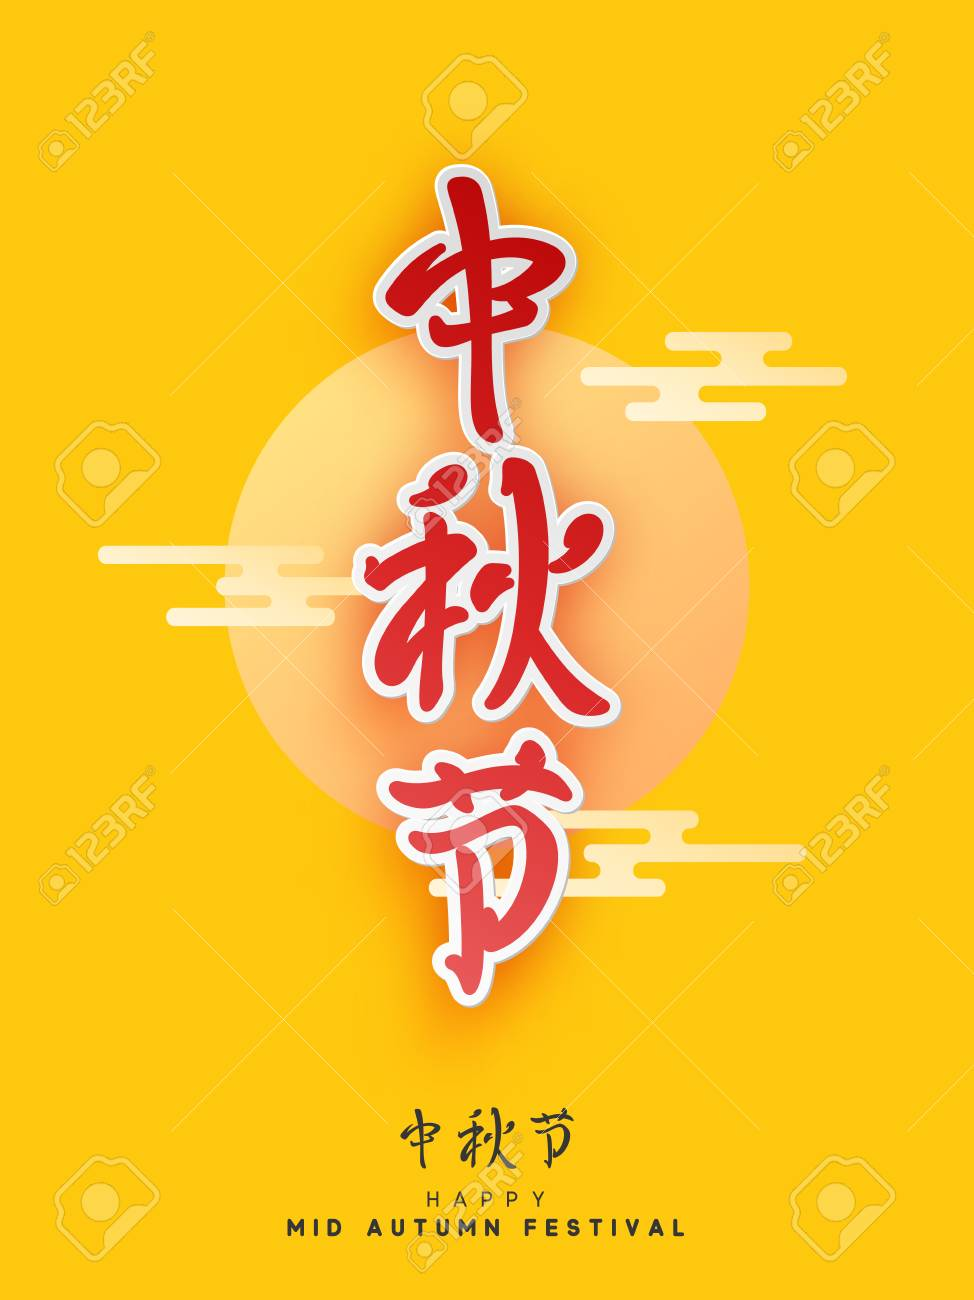 Mid autumn festival lettering chinese hieroglyph greeting card mid autumn festival lettering chinese hieroglyph greeting card illustration moon with clouds stock vector kristyandbryce Choice Image